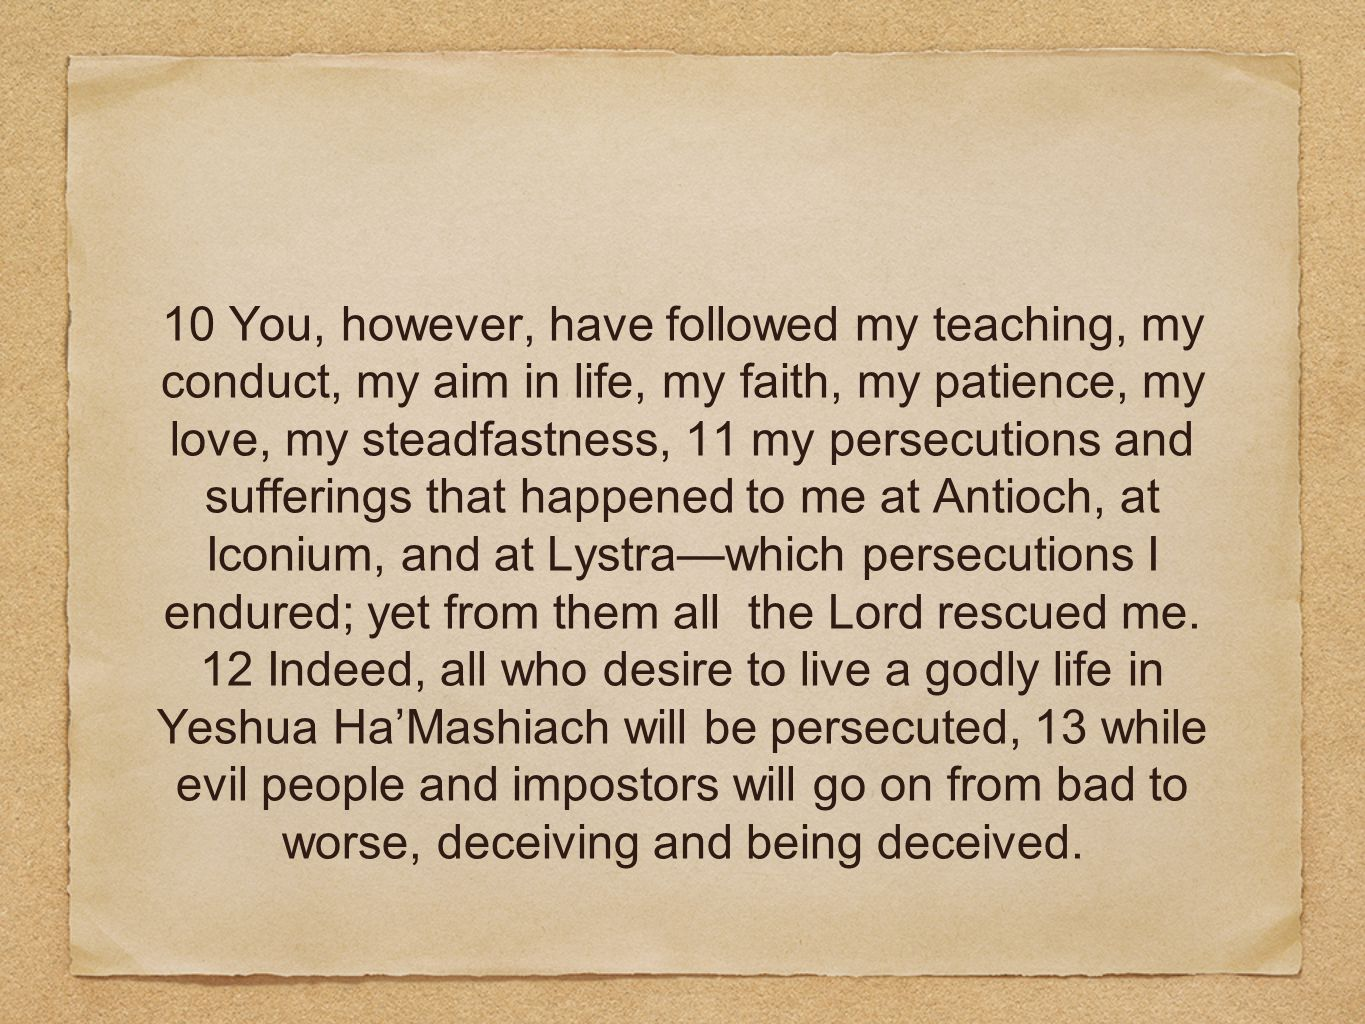 10 You, however, have followed my teaching, my conduct, my aim in life, my faith, my patience, my love, my steadfastness, 11 my persecutions and sufferings that happened to me at Antioch, at Iconium, and at Lystra—which persecutions I endured; yet from them all the Lord rescued me.